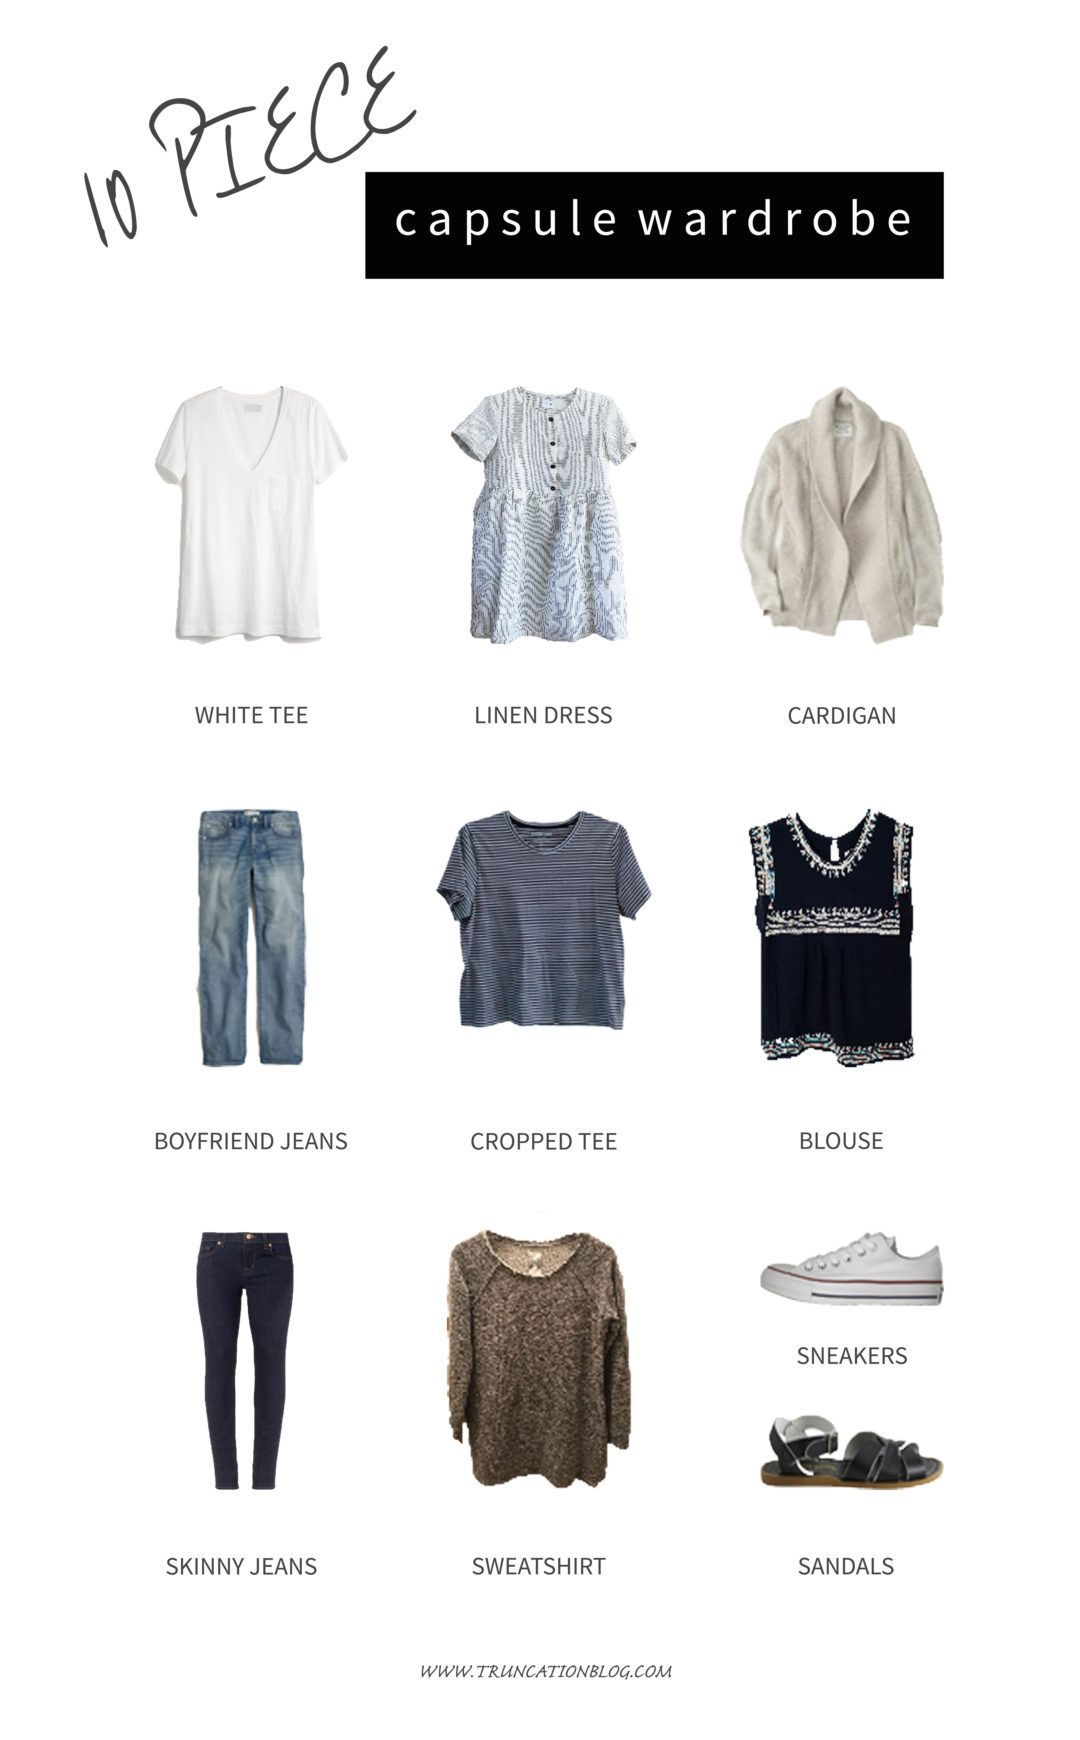 Karin Rambo Of Truncationblog Com Shares Her Spring 10x10 Style Challenge Wrap Up Minimalist Wardrobe Capsule Capsule Wardrobe Mom Capsule Wardrobe